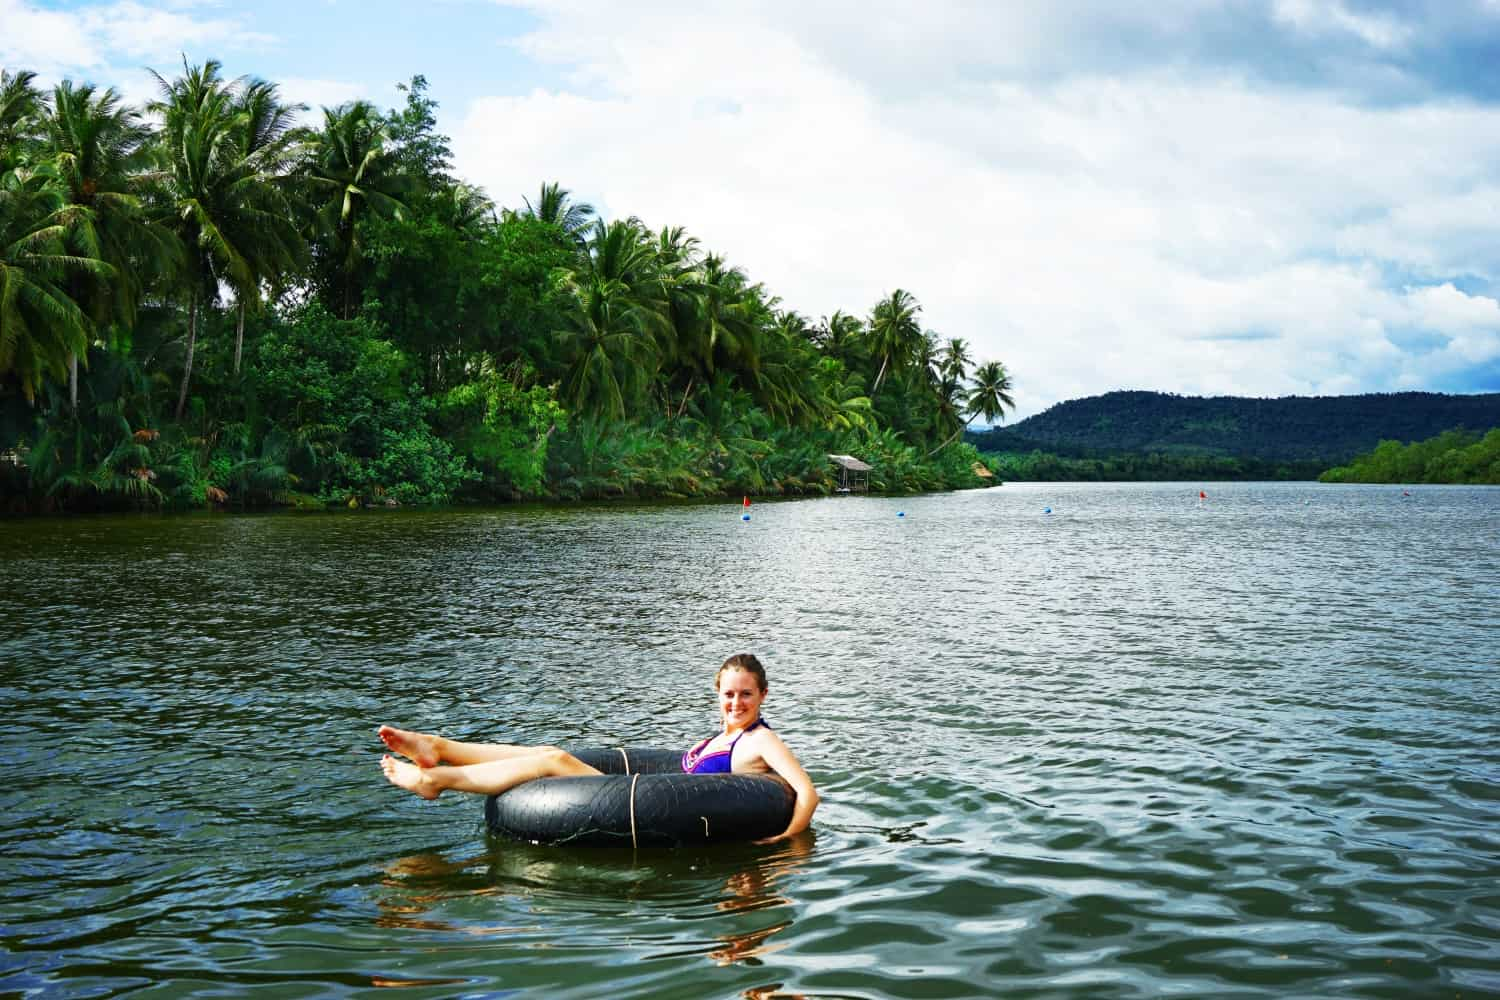 Lauren tubing in the Tatai River